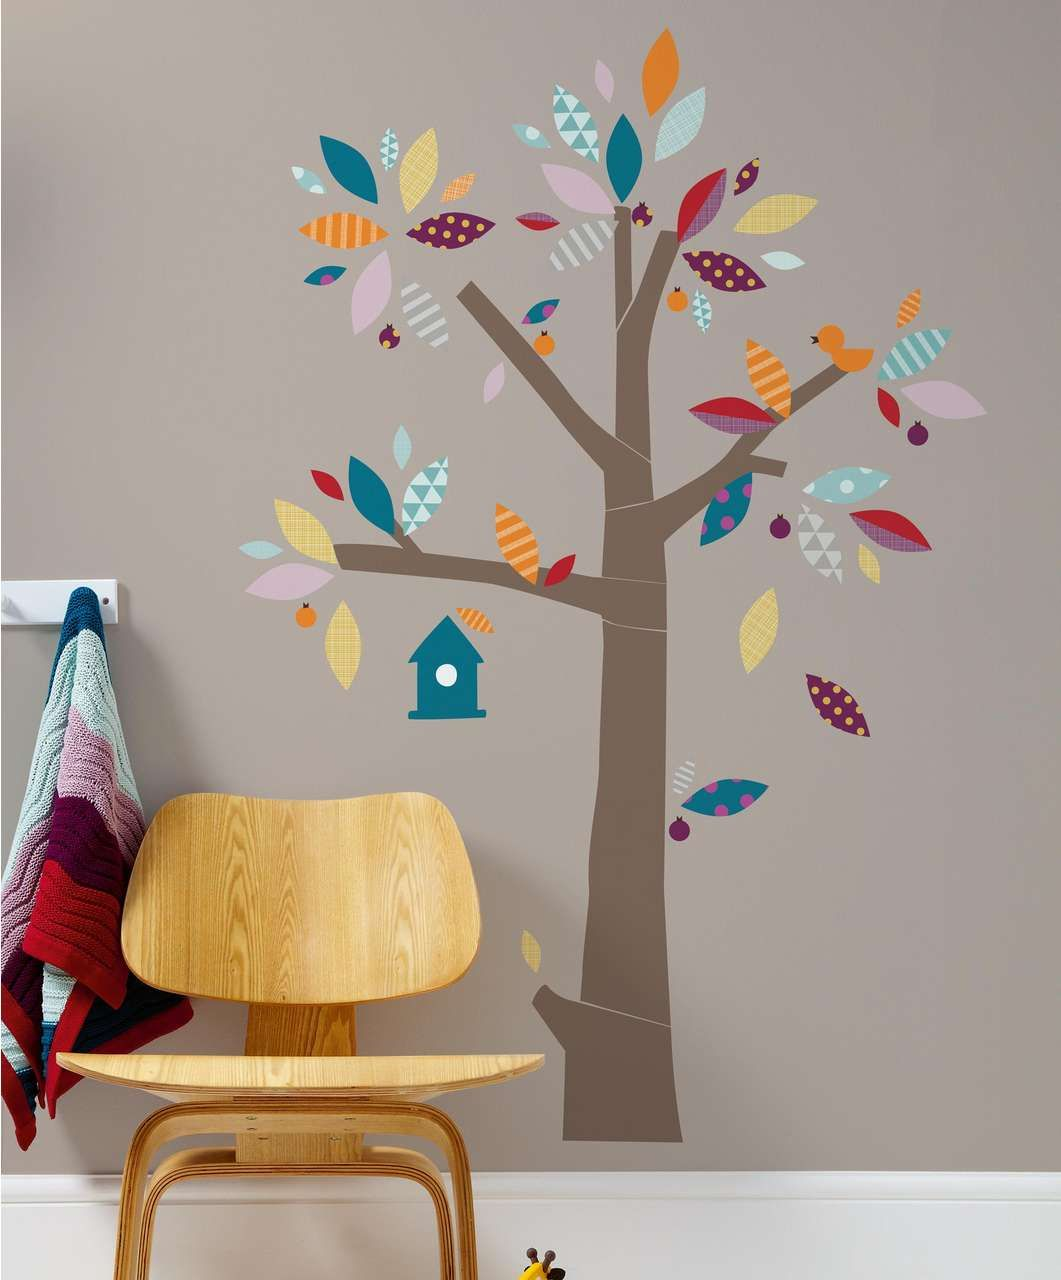 patternology tree wall stickers nursery accessories mamas patternology tree wall stickers nursery accessories mamas papas mamasandpapas dreamnursery